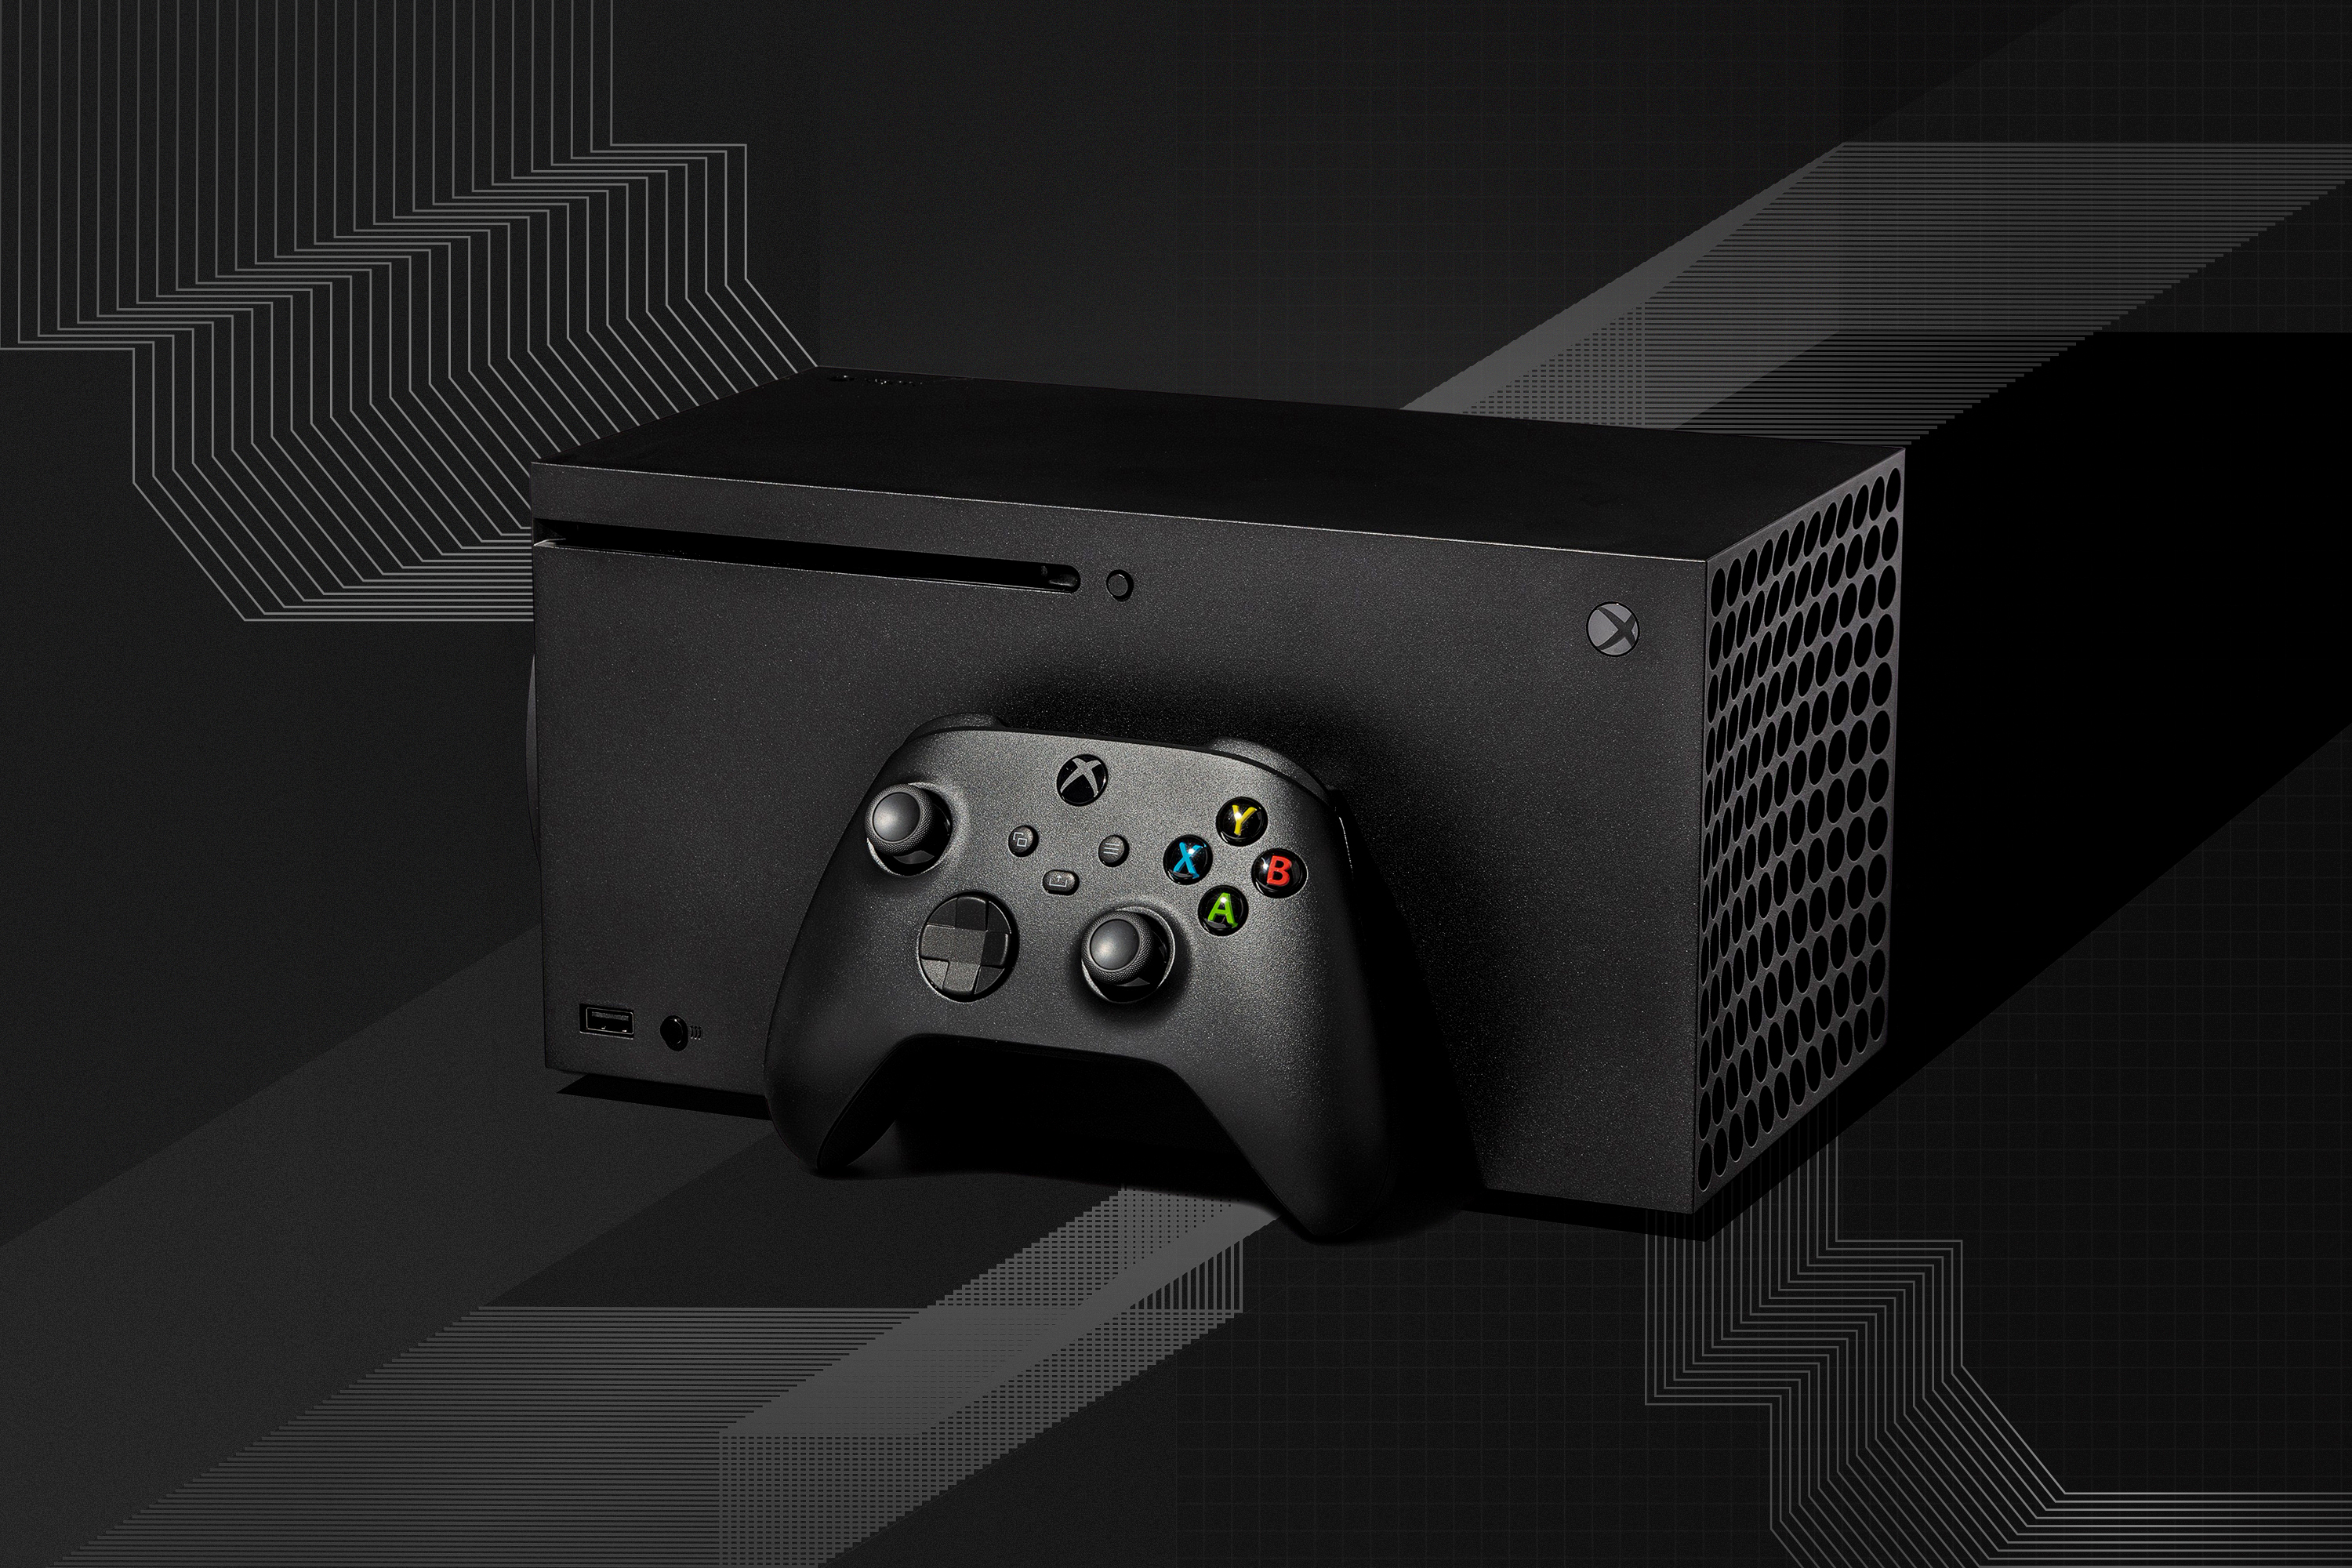 Xbox Series X console and controller on a graphic linear background